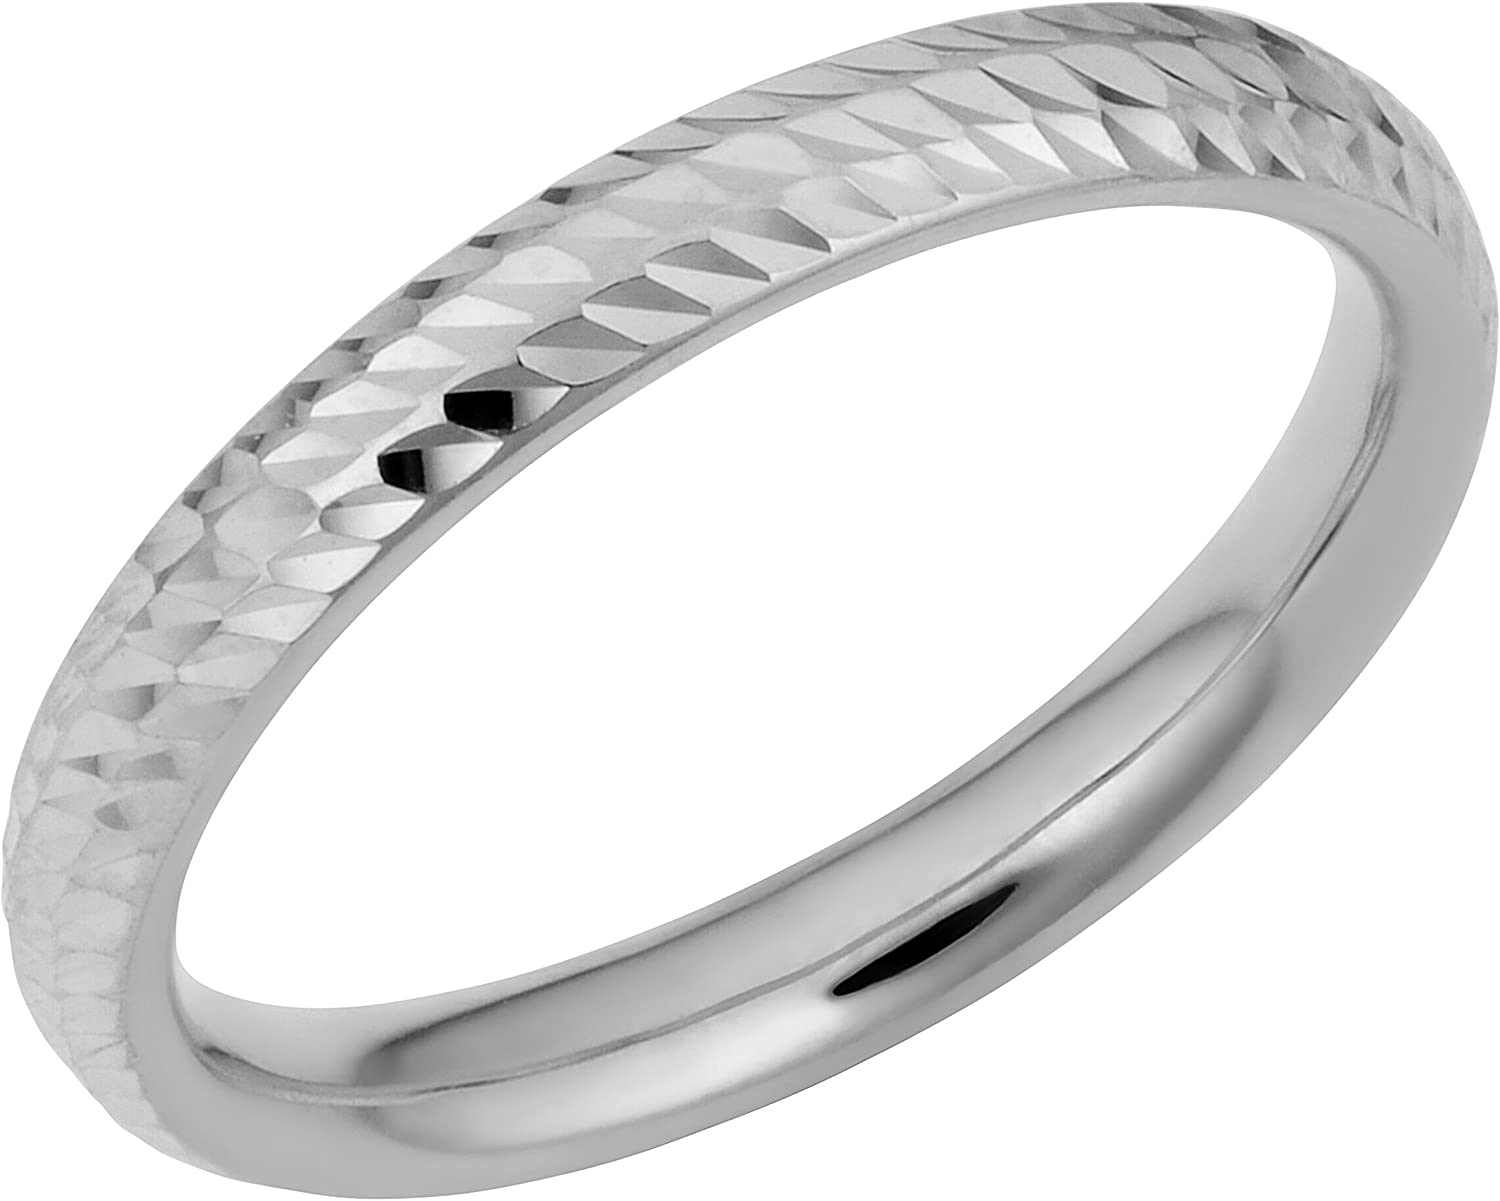 Security Jewelers 14k White Gold 2mm Half Round Light Band 14kt White Gold Ring Size 10